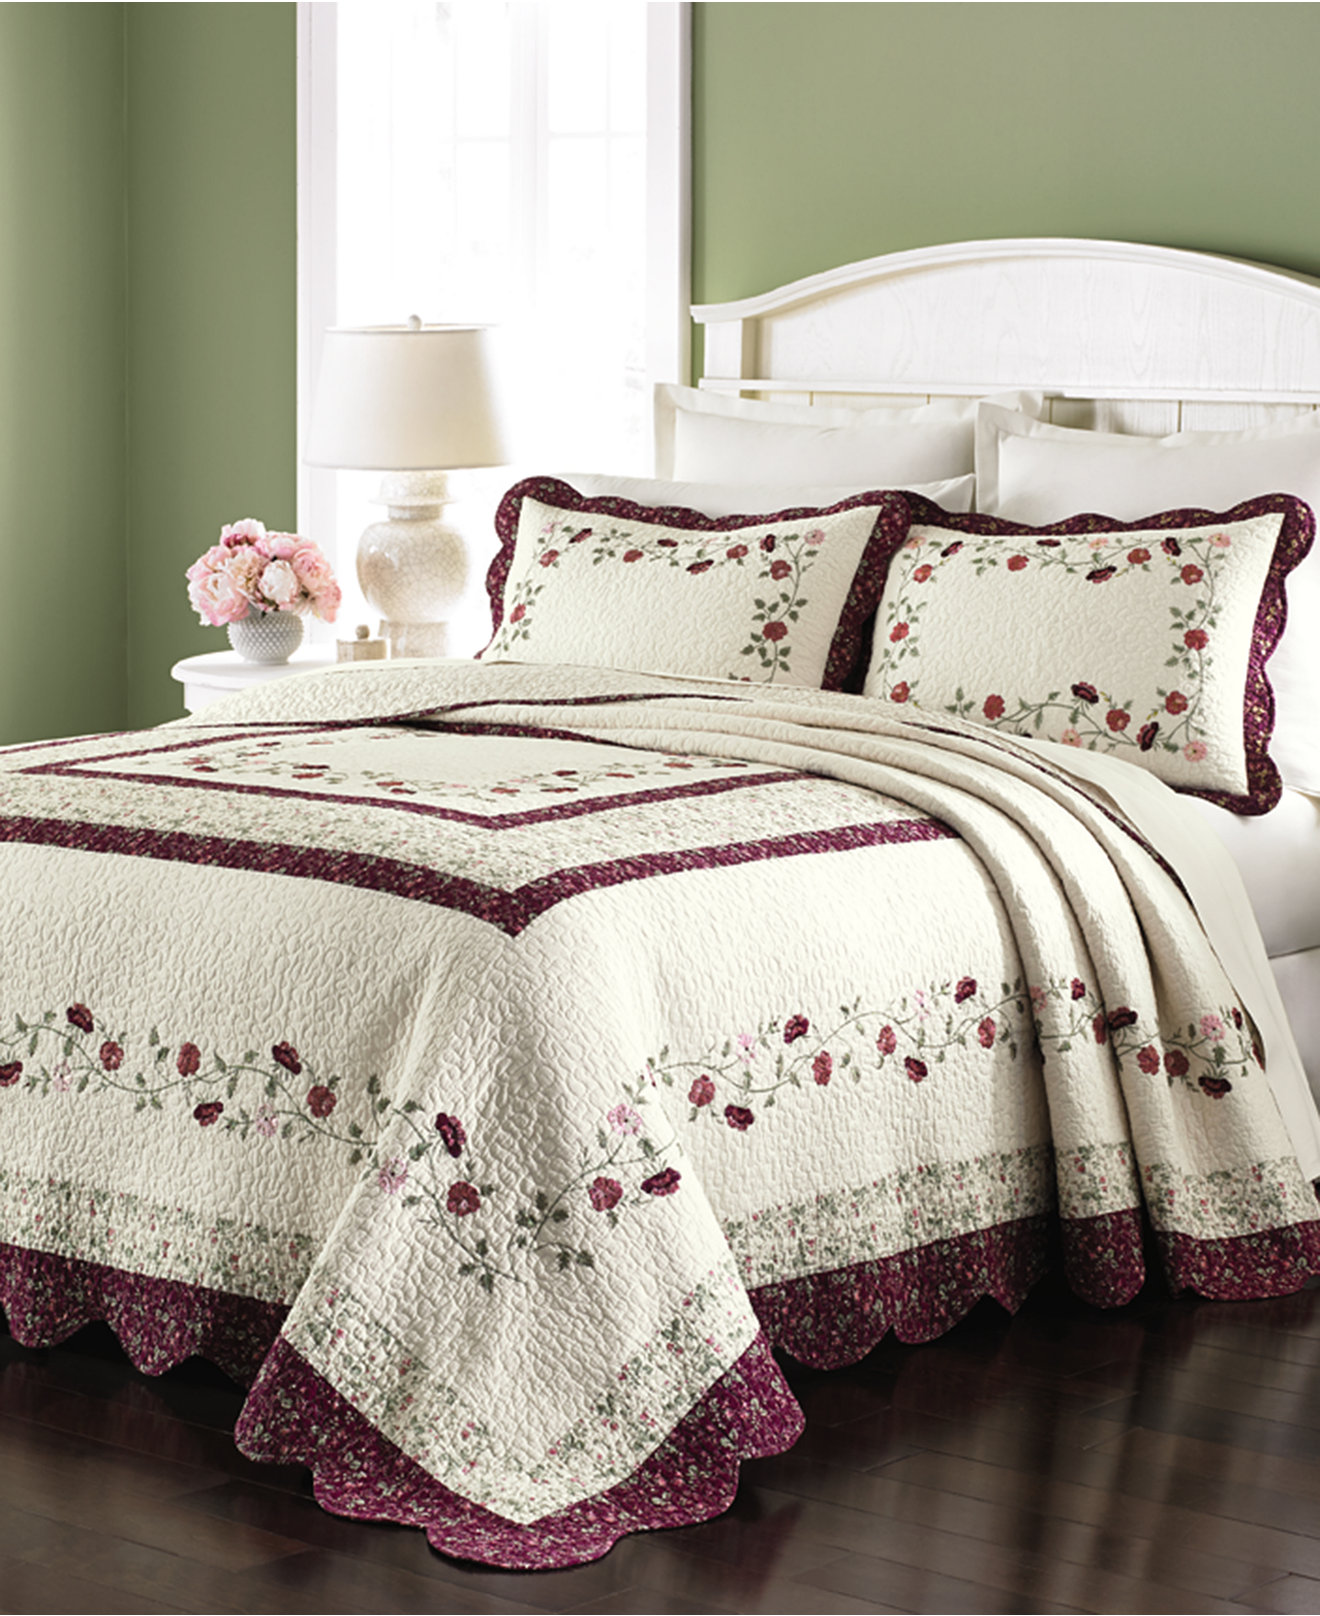 Maroon Bedding | Pier One Bedding | Queen Bedspreads